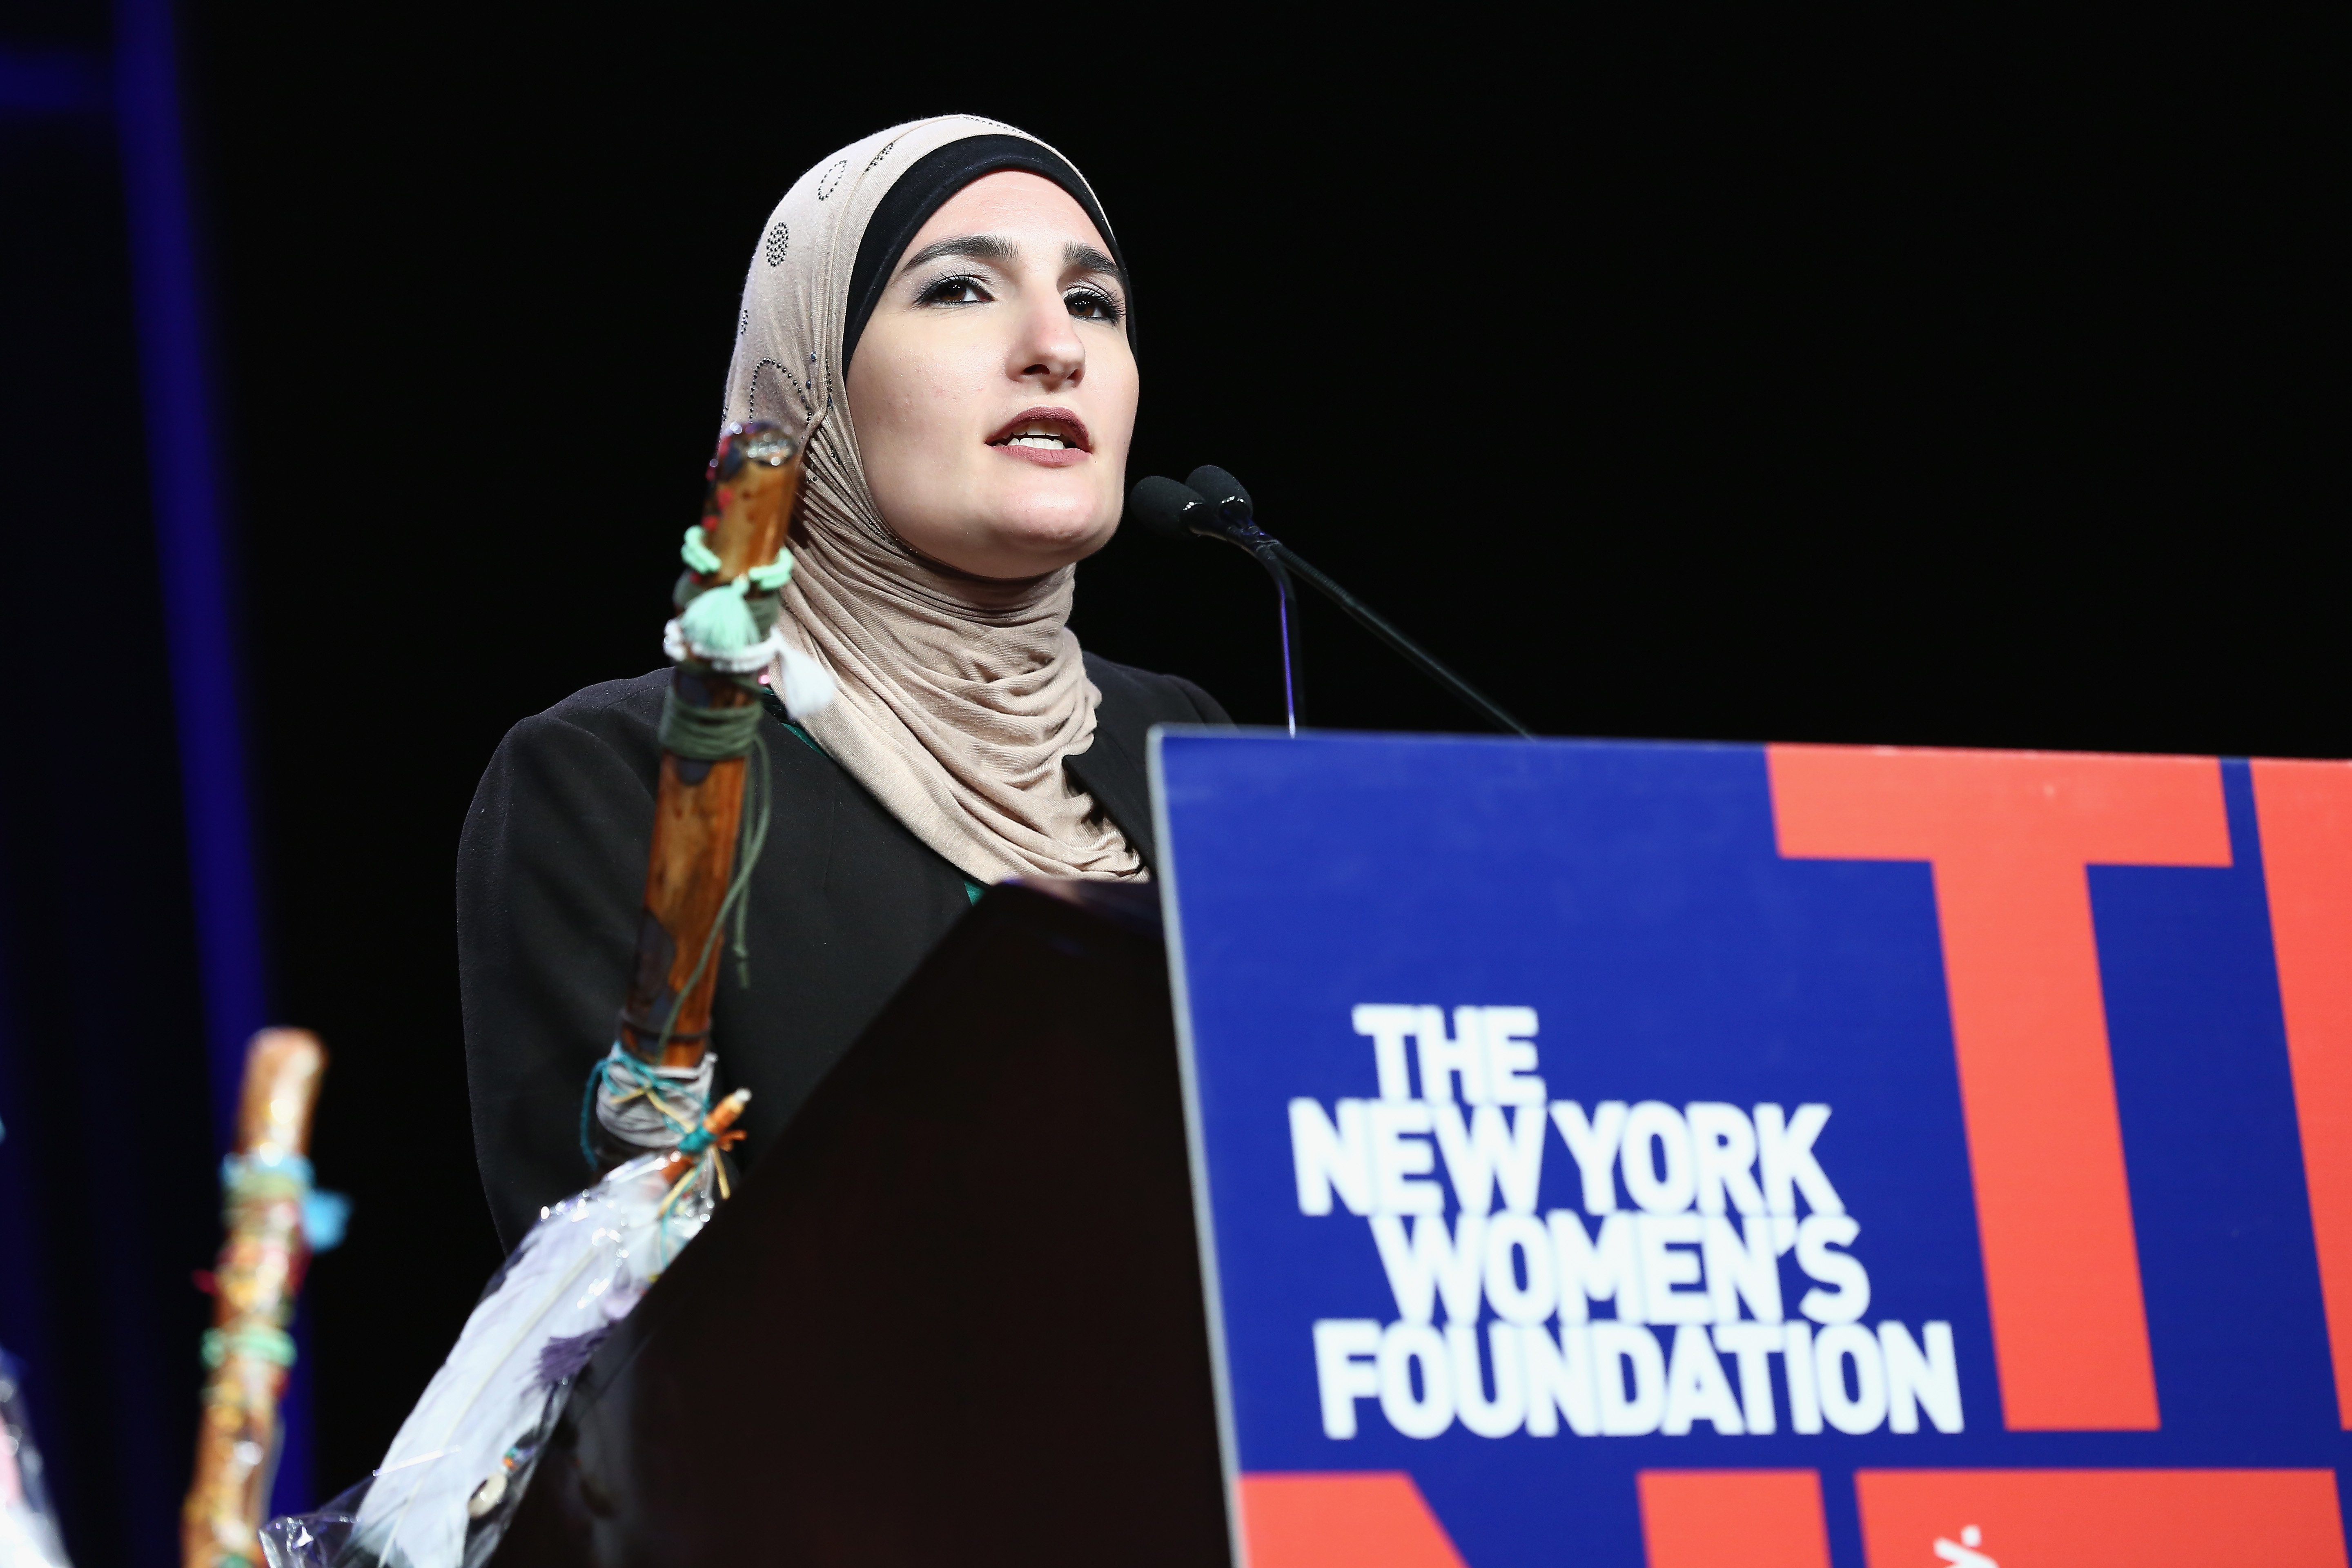 Linda Sarsour speaks onstage during the 30th Anniversary Celebrating Women Breakfast at Marriott Marquis Hotel on May 11, 2017 in New York City.